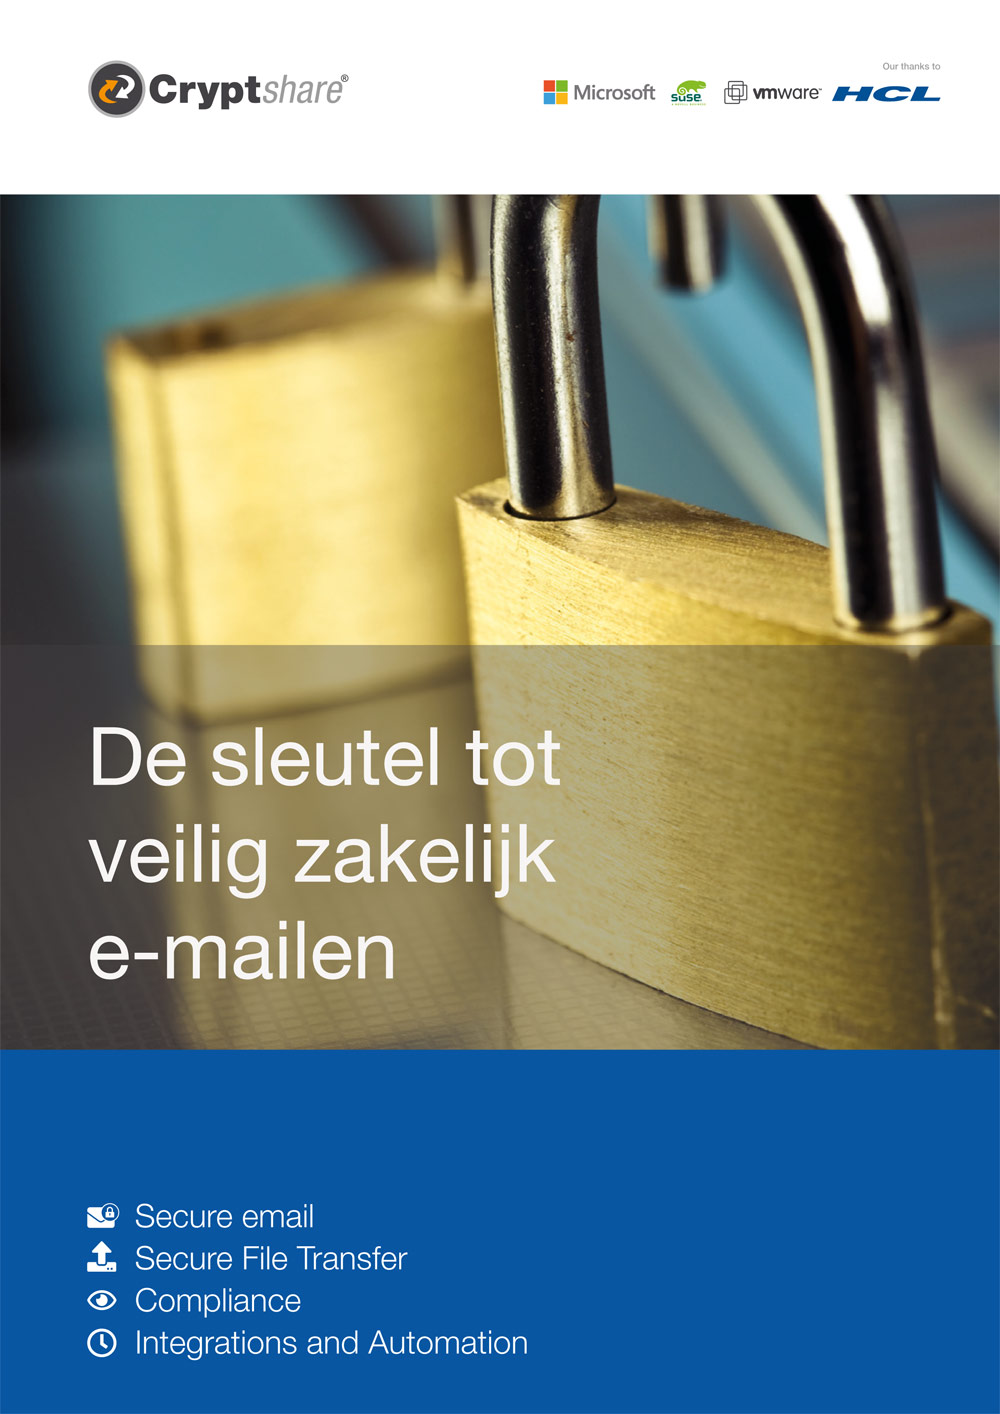 Cryptshare-The_key_for_secure_business_e-mails-05282019-NL-NL-web